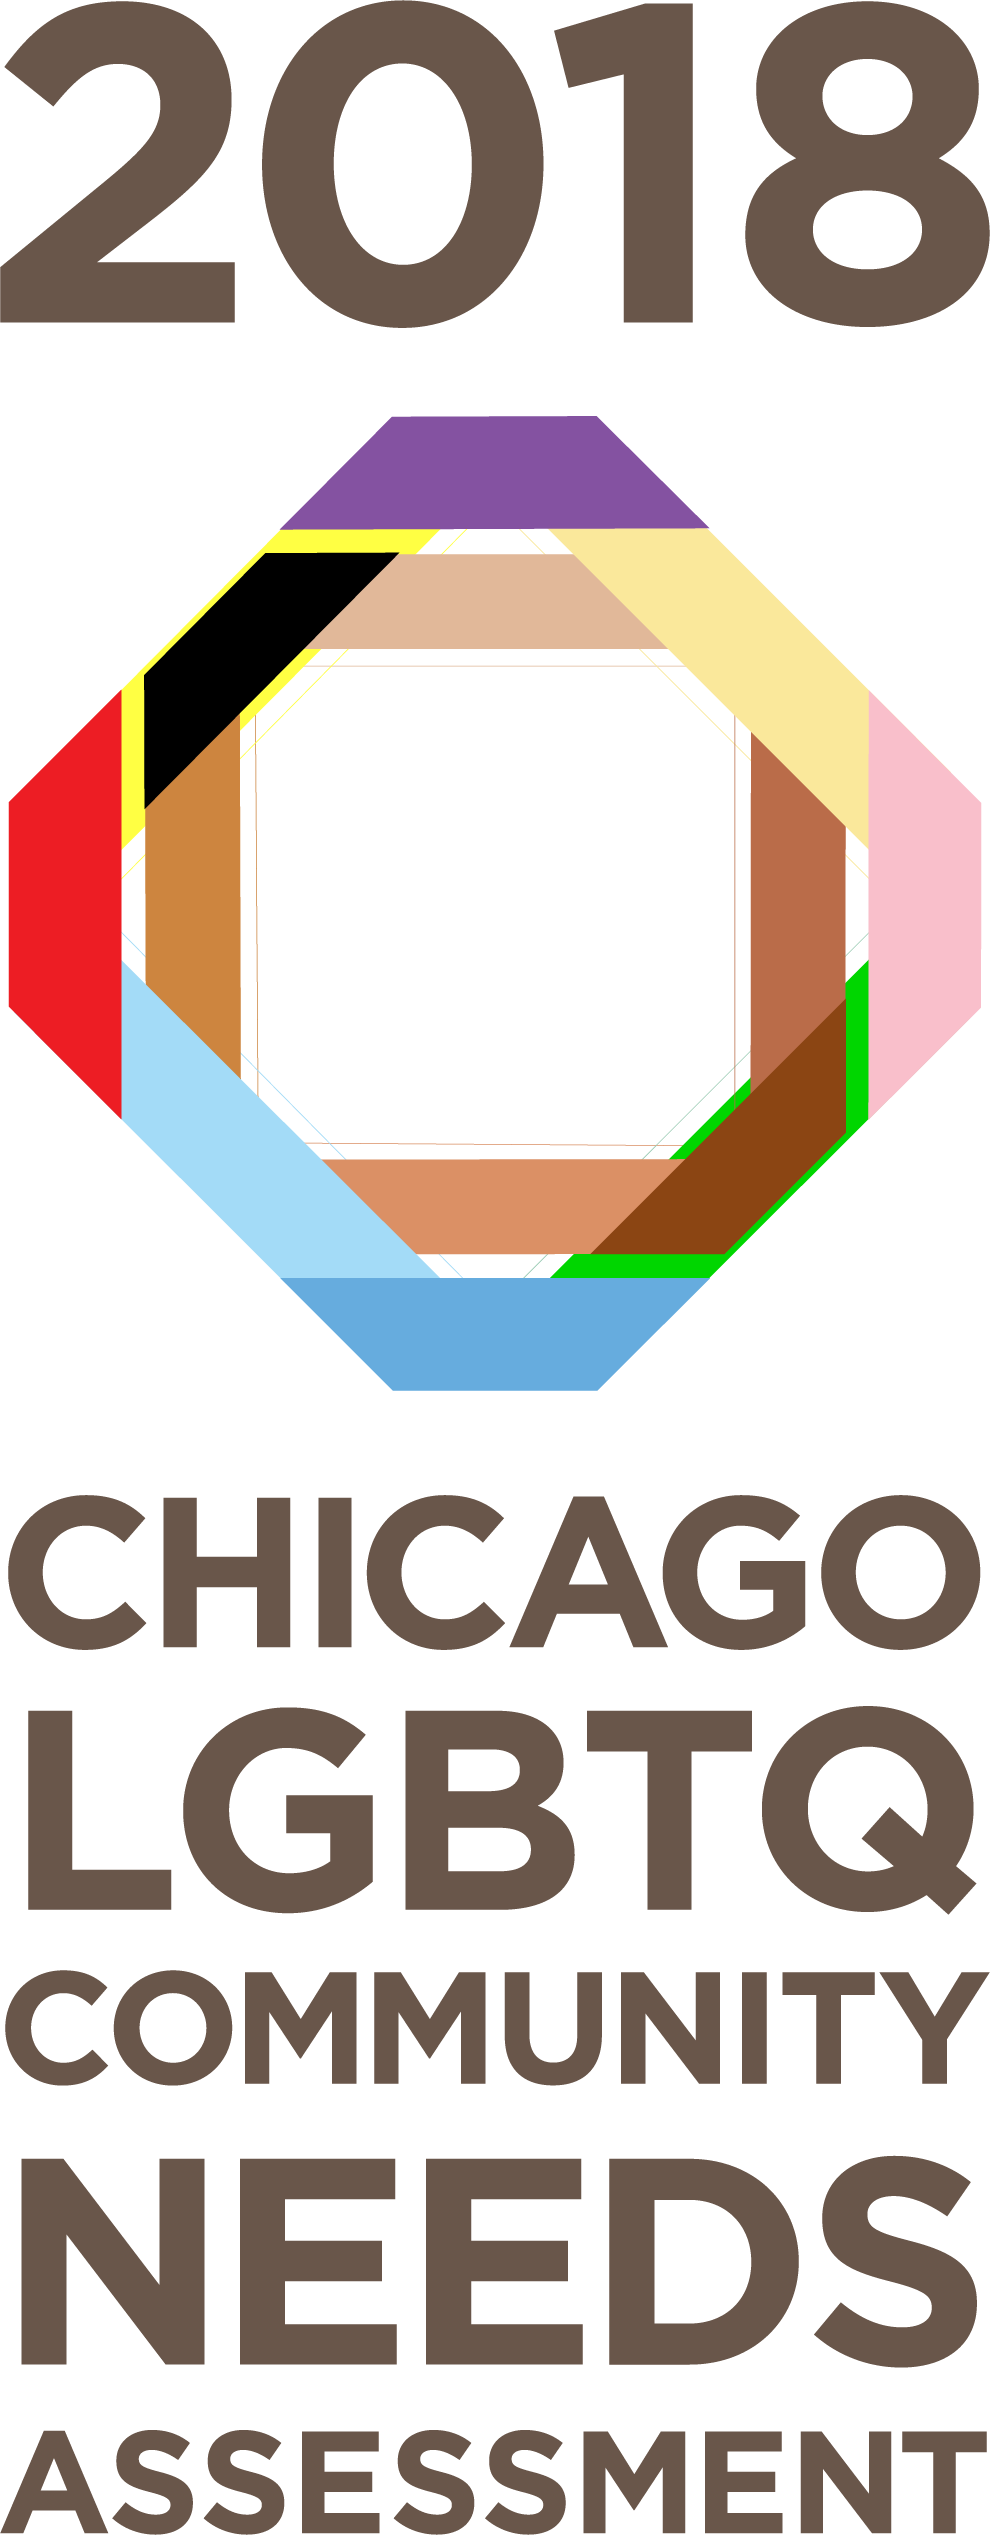 2018 Chicago LGBTQ Community Needs Assessment Logo. Intersecting lines in rainbow colors, including black and brown, representing the inclusive Pride flag.